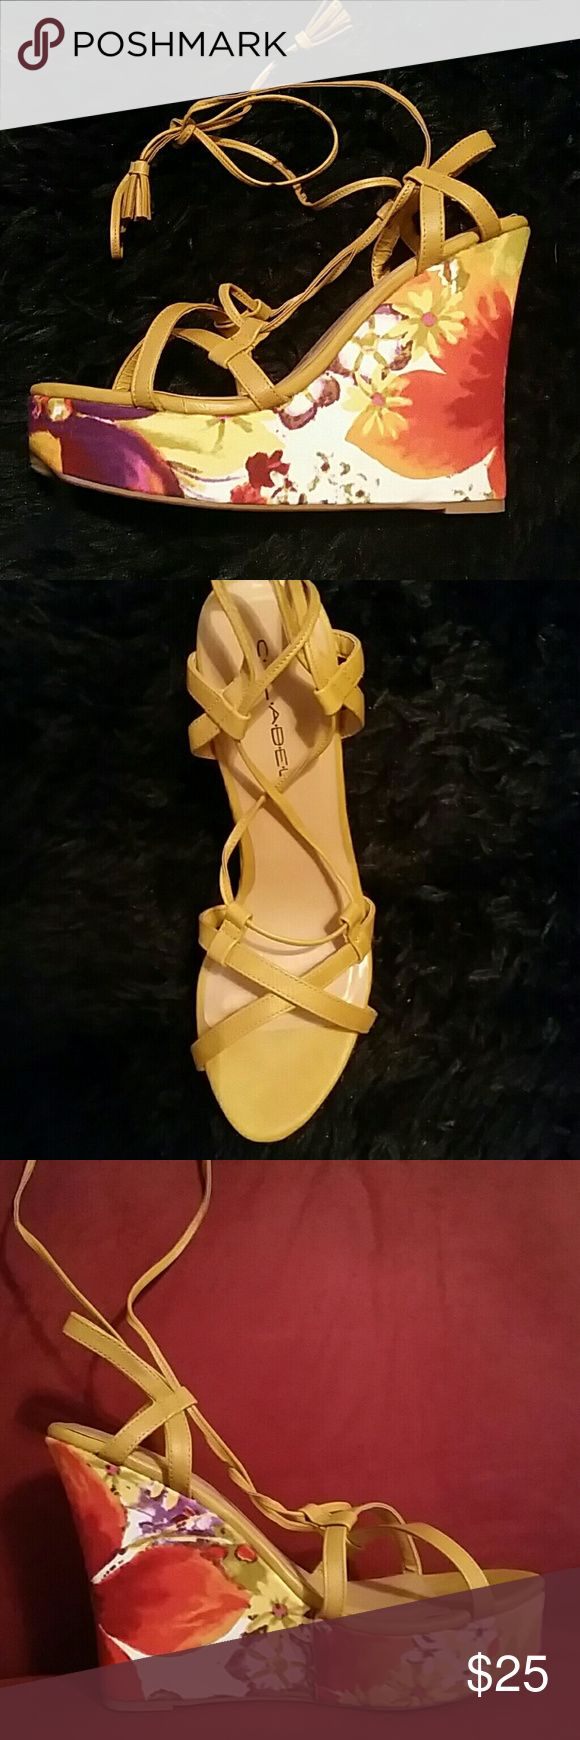 Beautiful gold flower design wedge heels Gold wedge heel sandals with orange flower designs on the heels. Shoes have the fashionable new tie up design. 5 inch heel with a 1.5 in platform. Never worn. Shoes Wedges